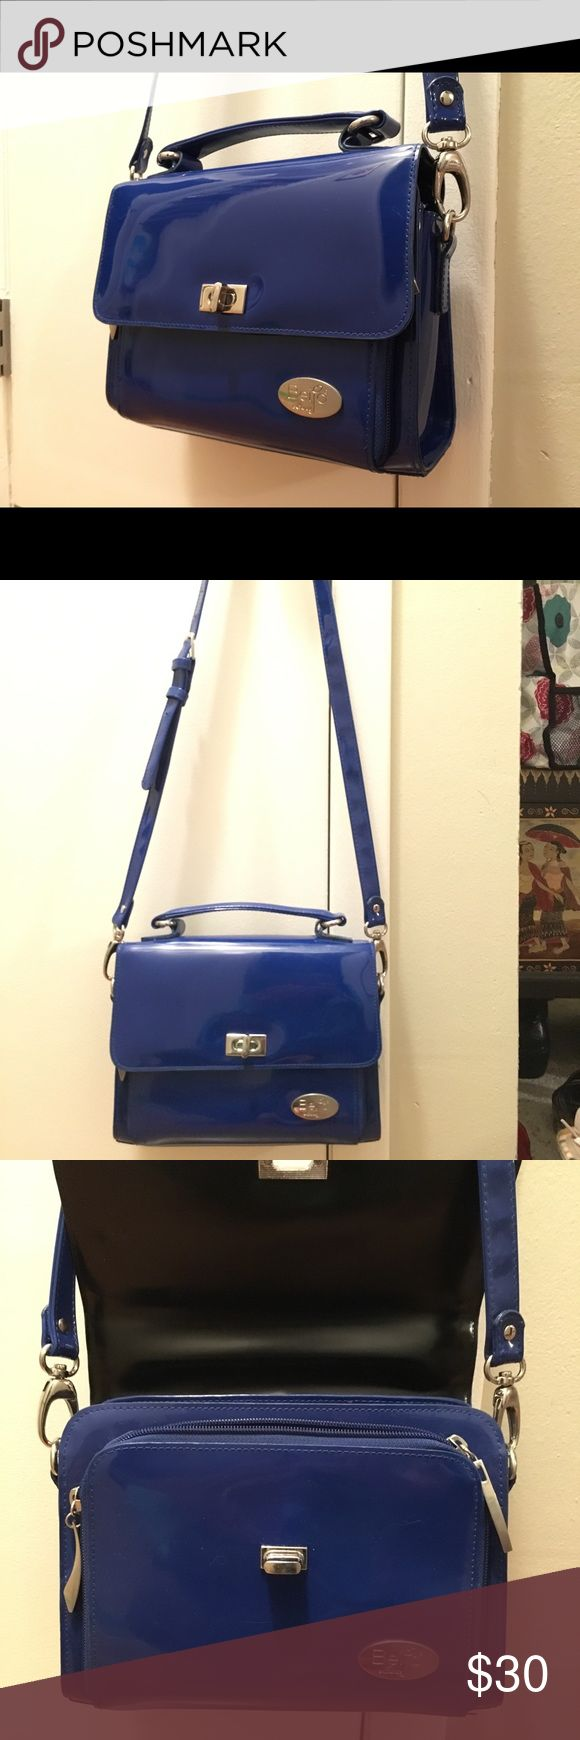 Beijo Crossbody Organizer Bag Royal blue crossbody organizer bag. It's in great condition! Carried only a few times on vacation. Strap is adjustable and there's a strap across the top to carry by hand. Beijo Bags Crossbody Bags